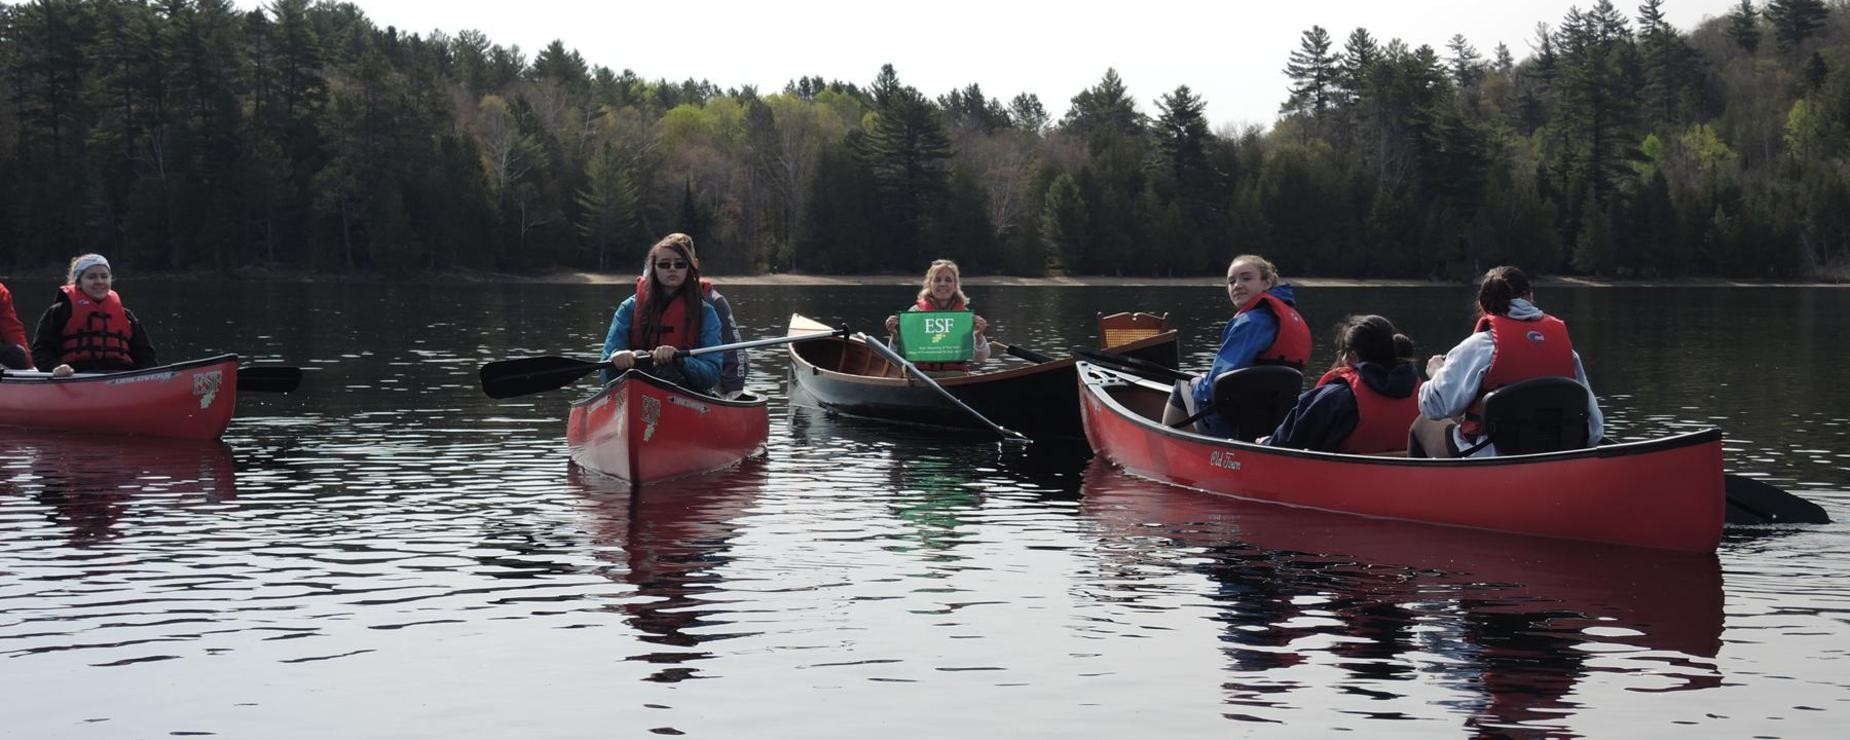 Four canoes full of the Environmental Club students paddle around a lake